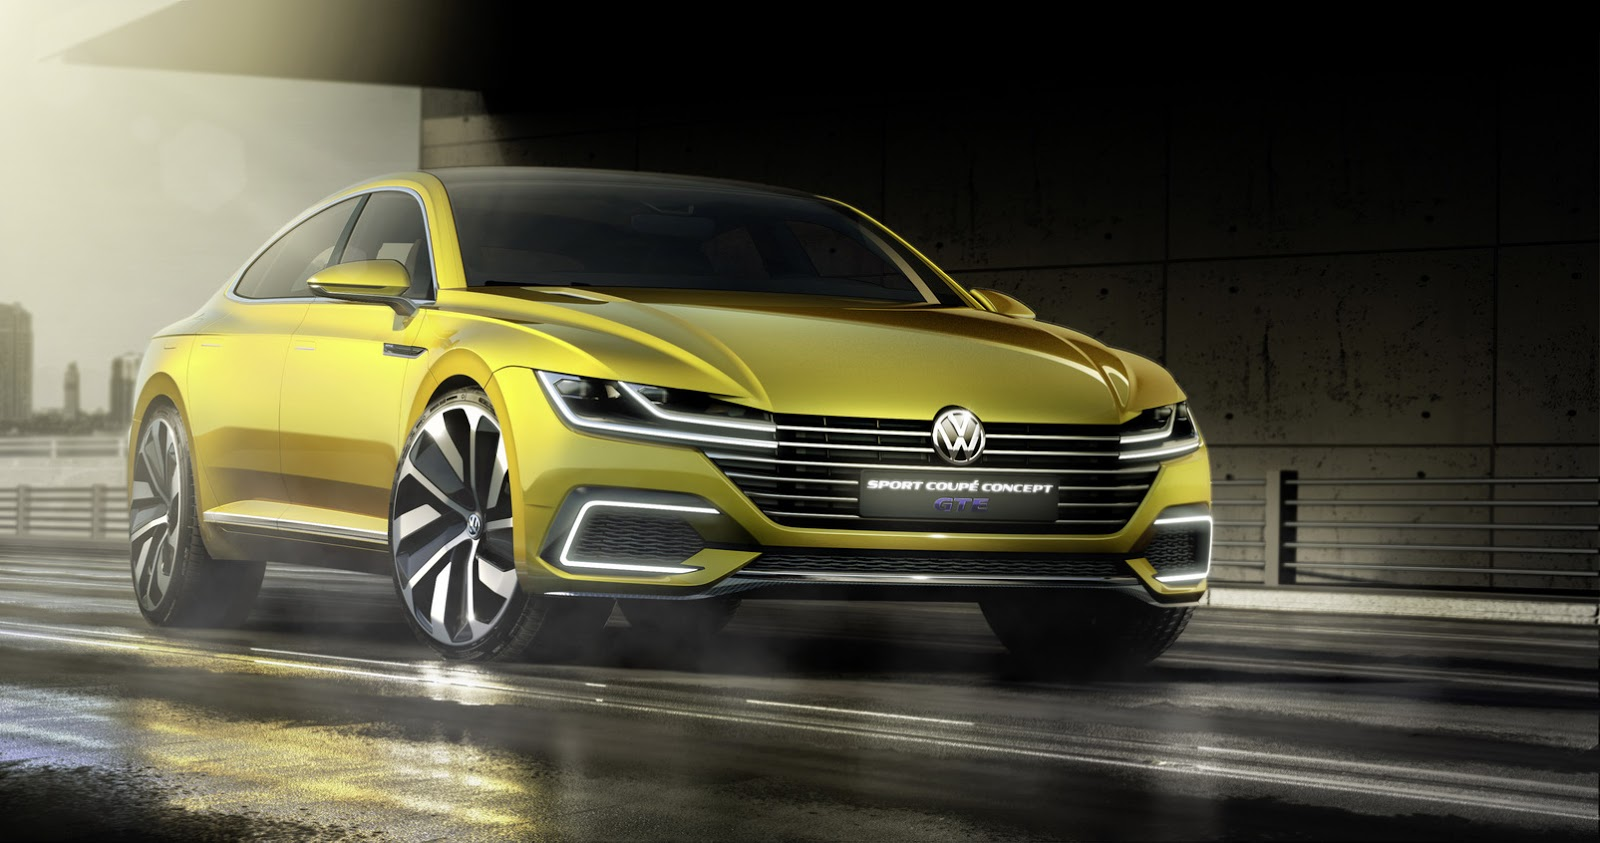 New vw sport coupe concept gte slots between passat and phaeton updated